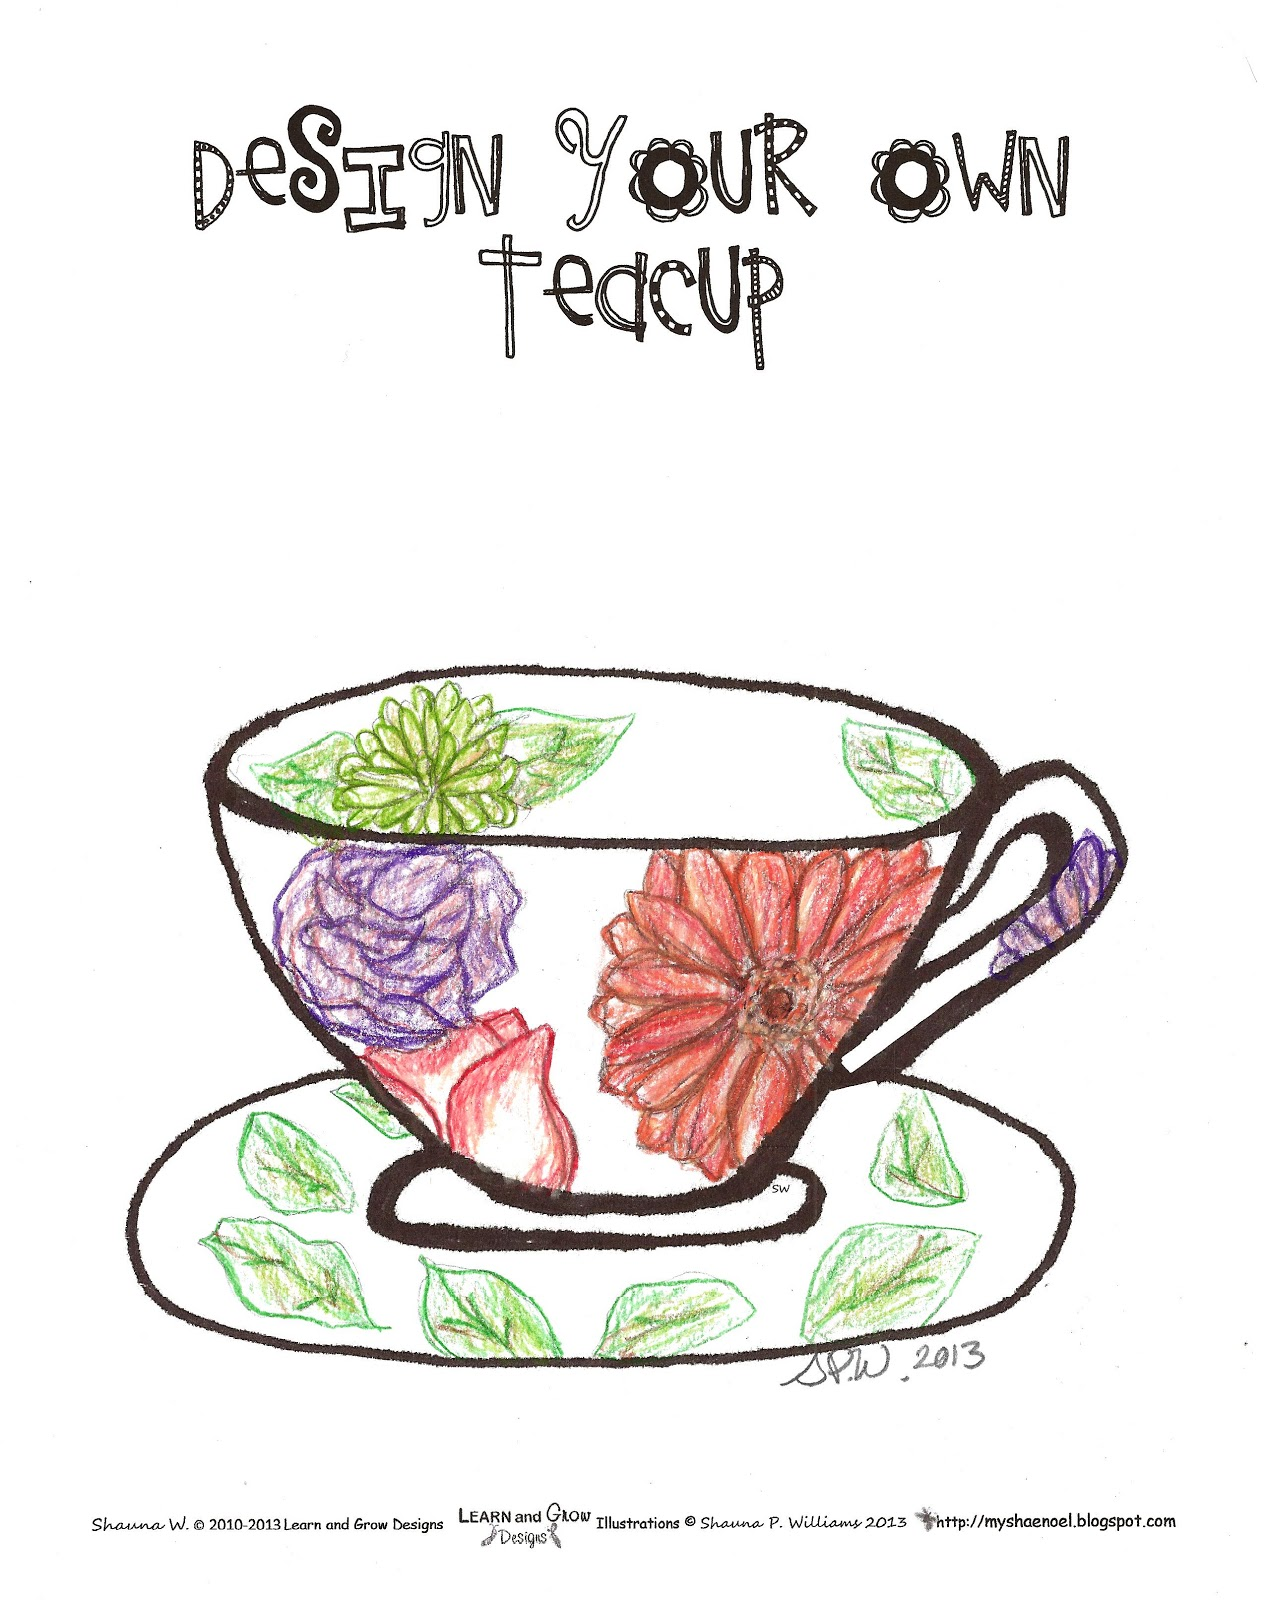 Learn and Grow Designs Website: Free Design a Teacup ...